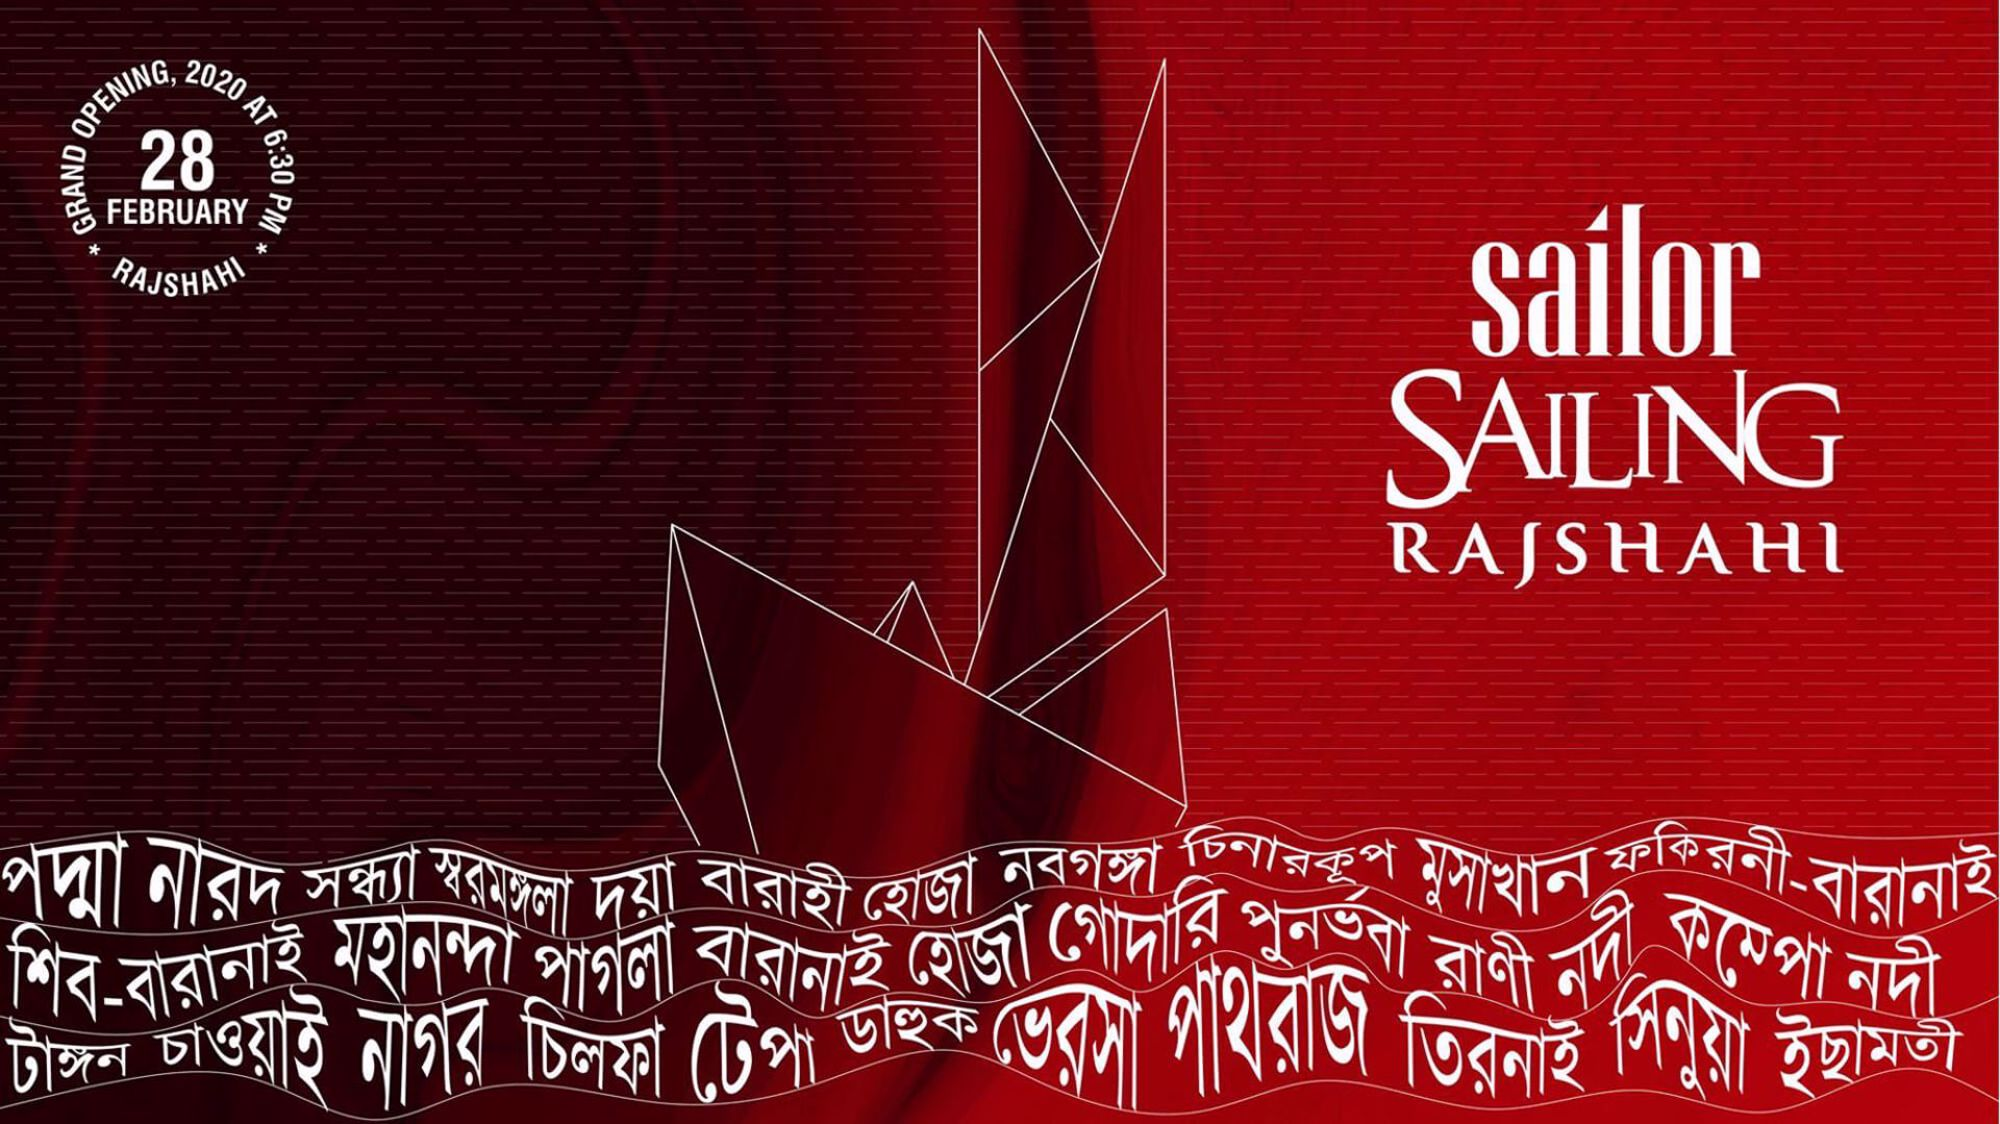 Sailor launched the newest outlet in Rajshahi City